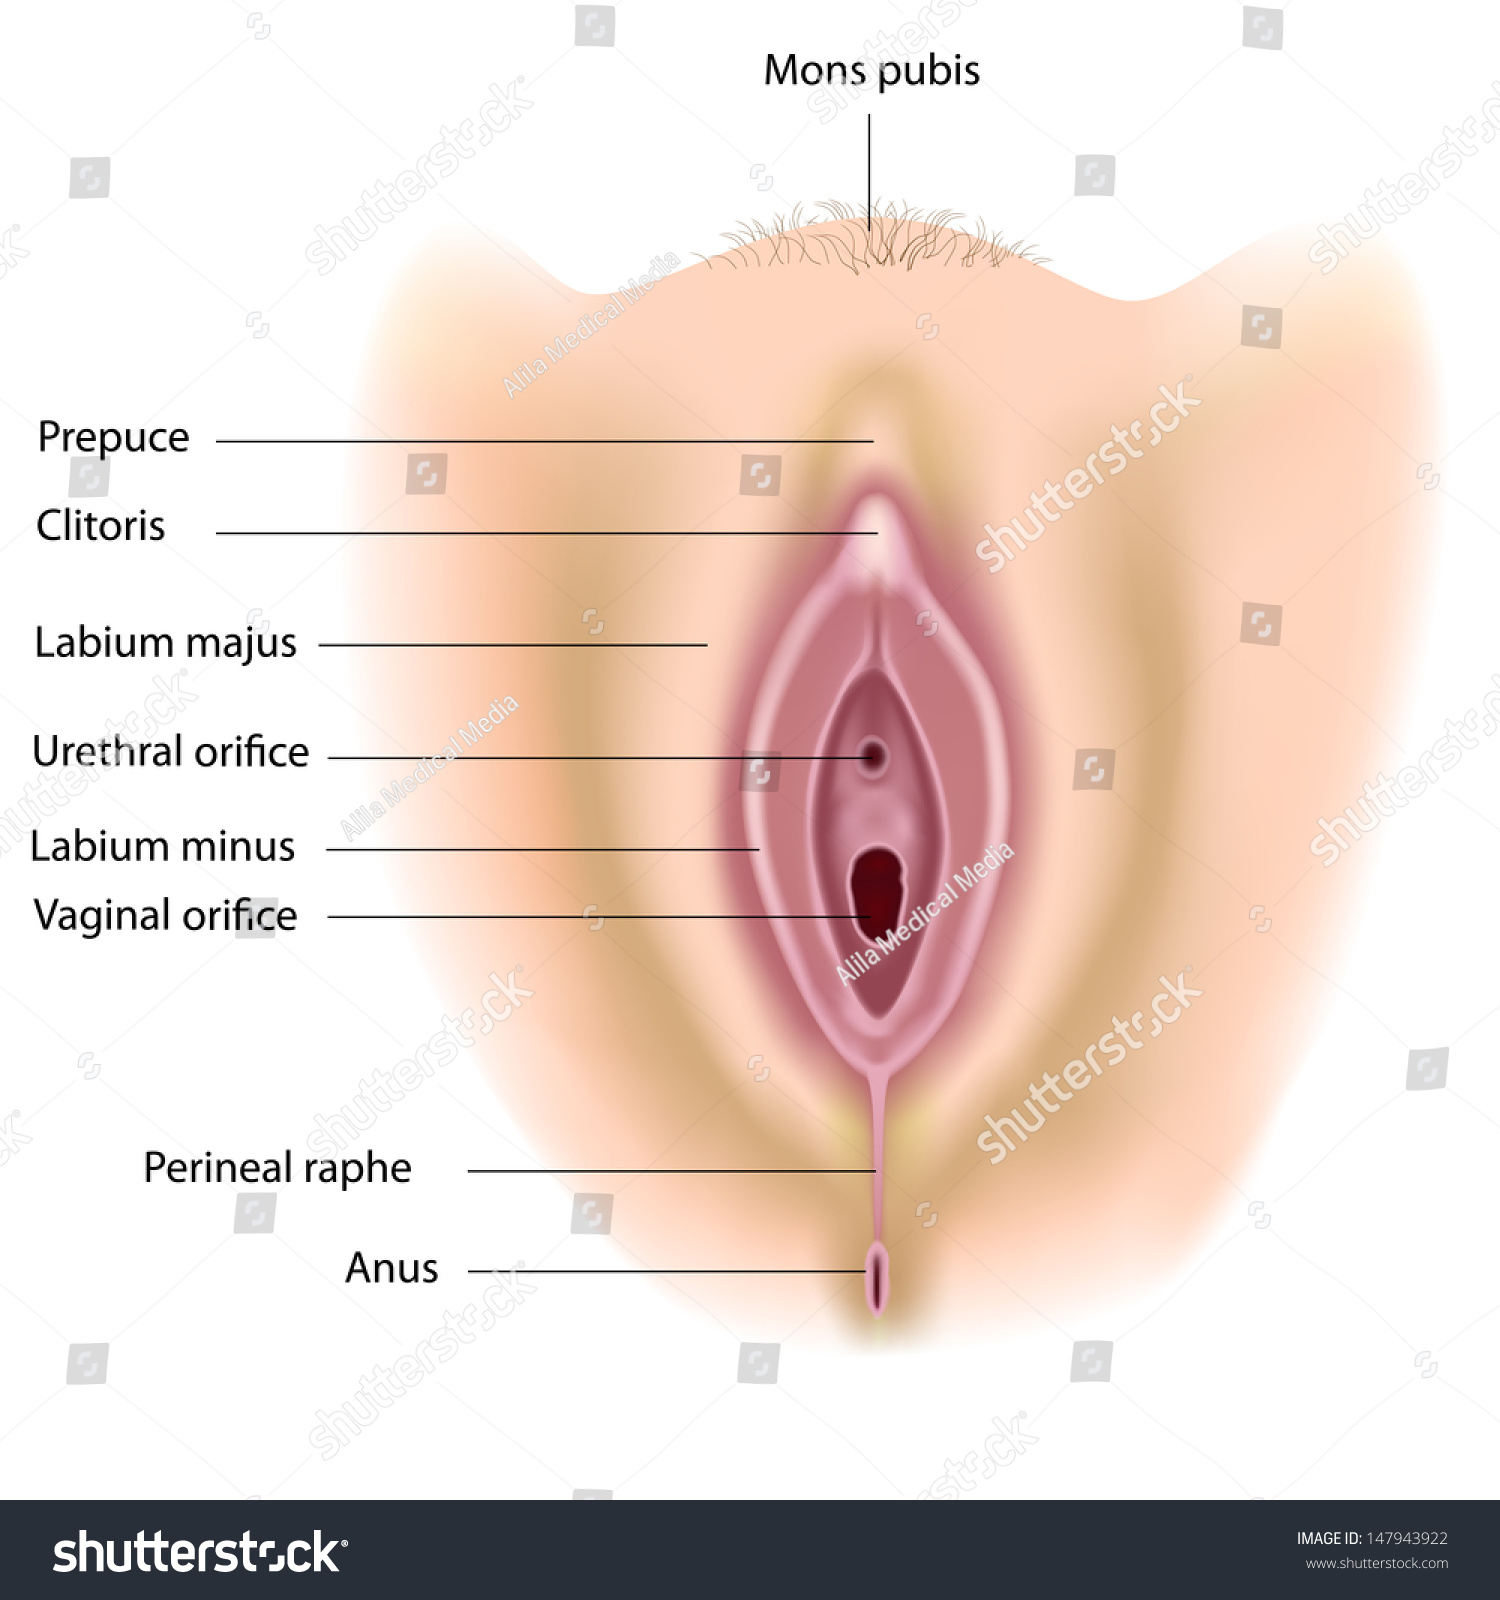 Photot vaginal anatomy